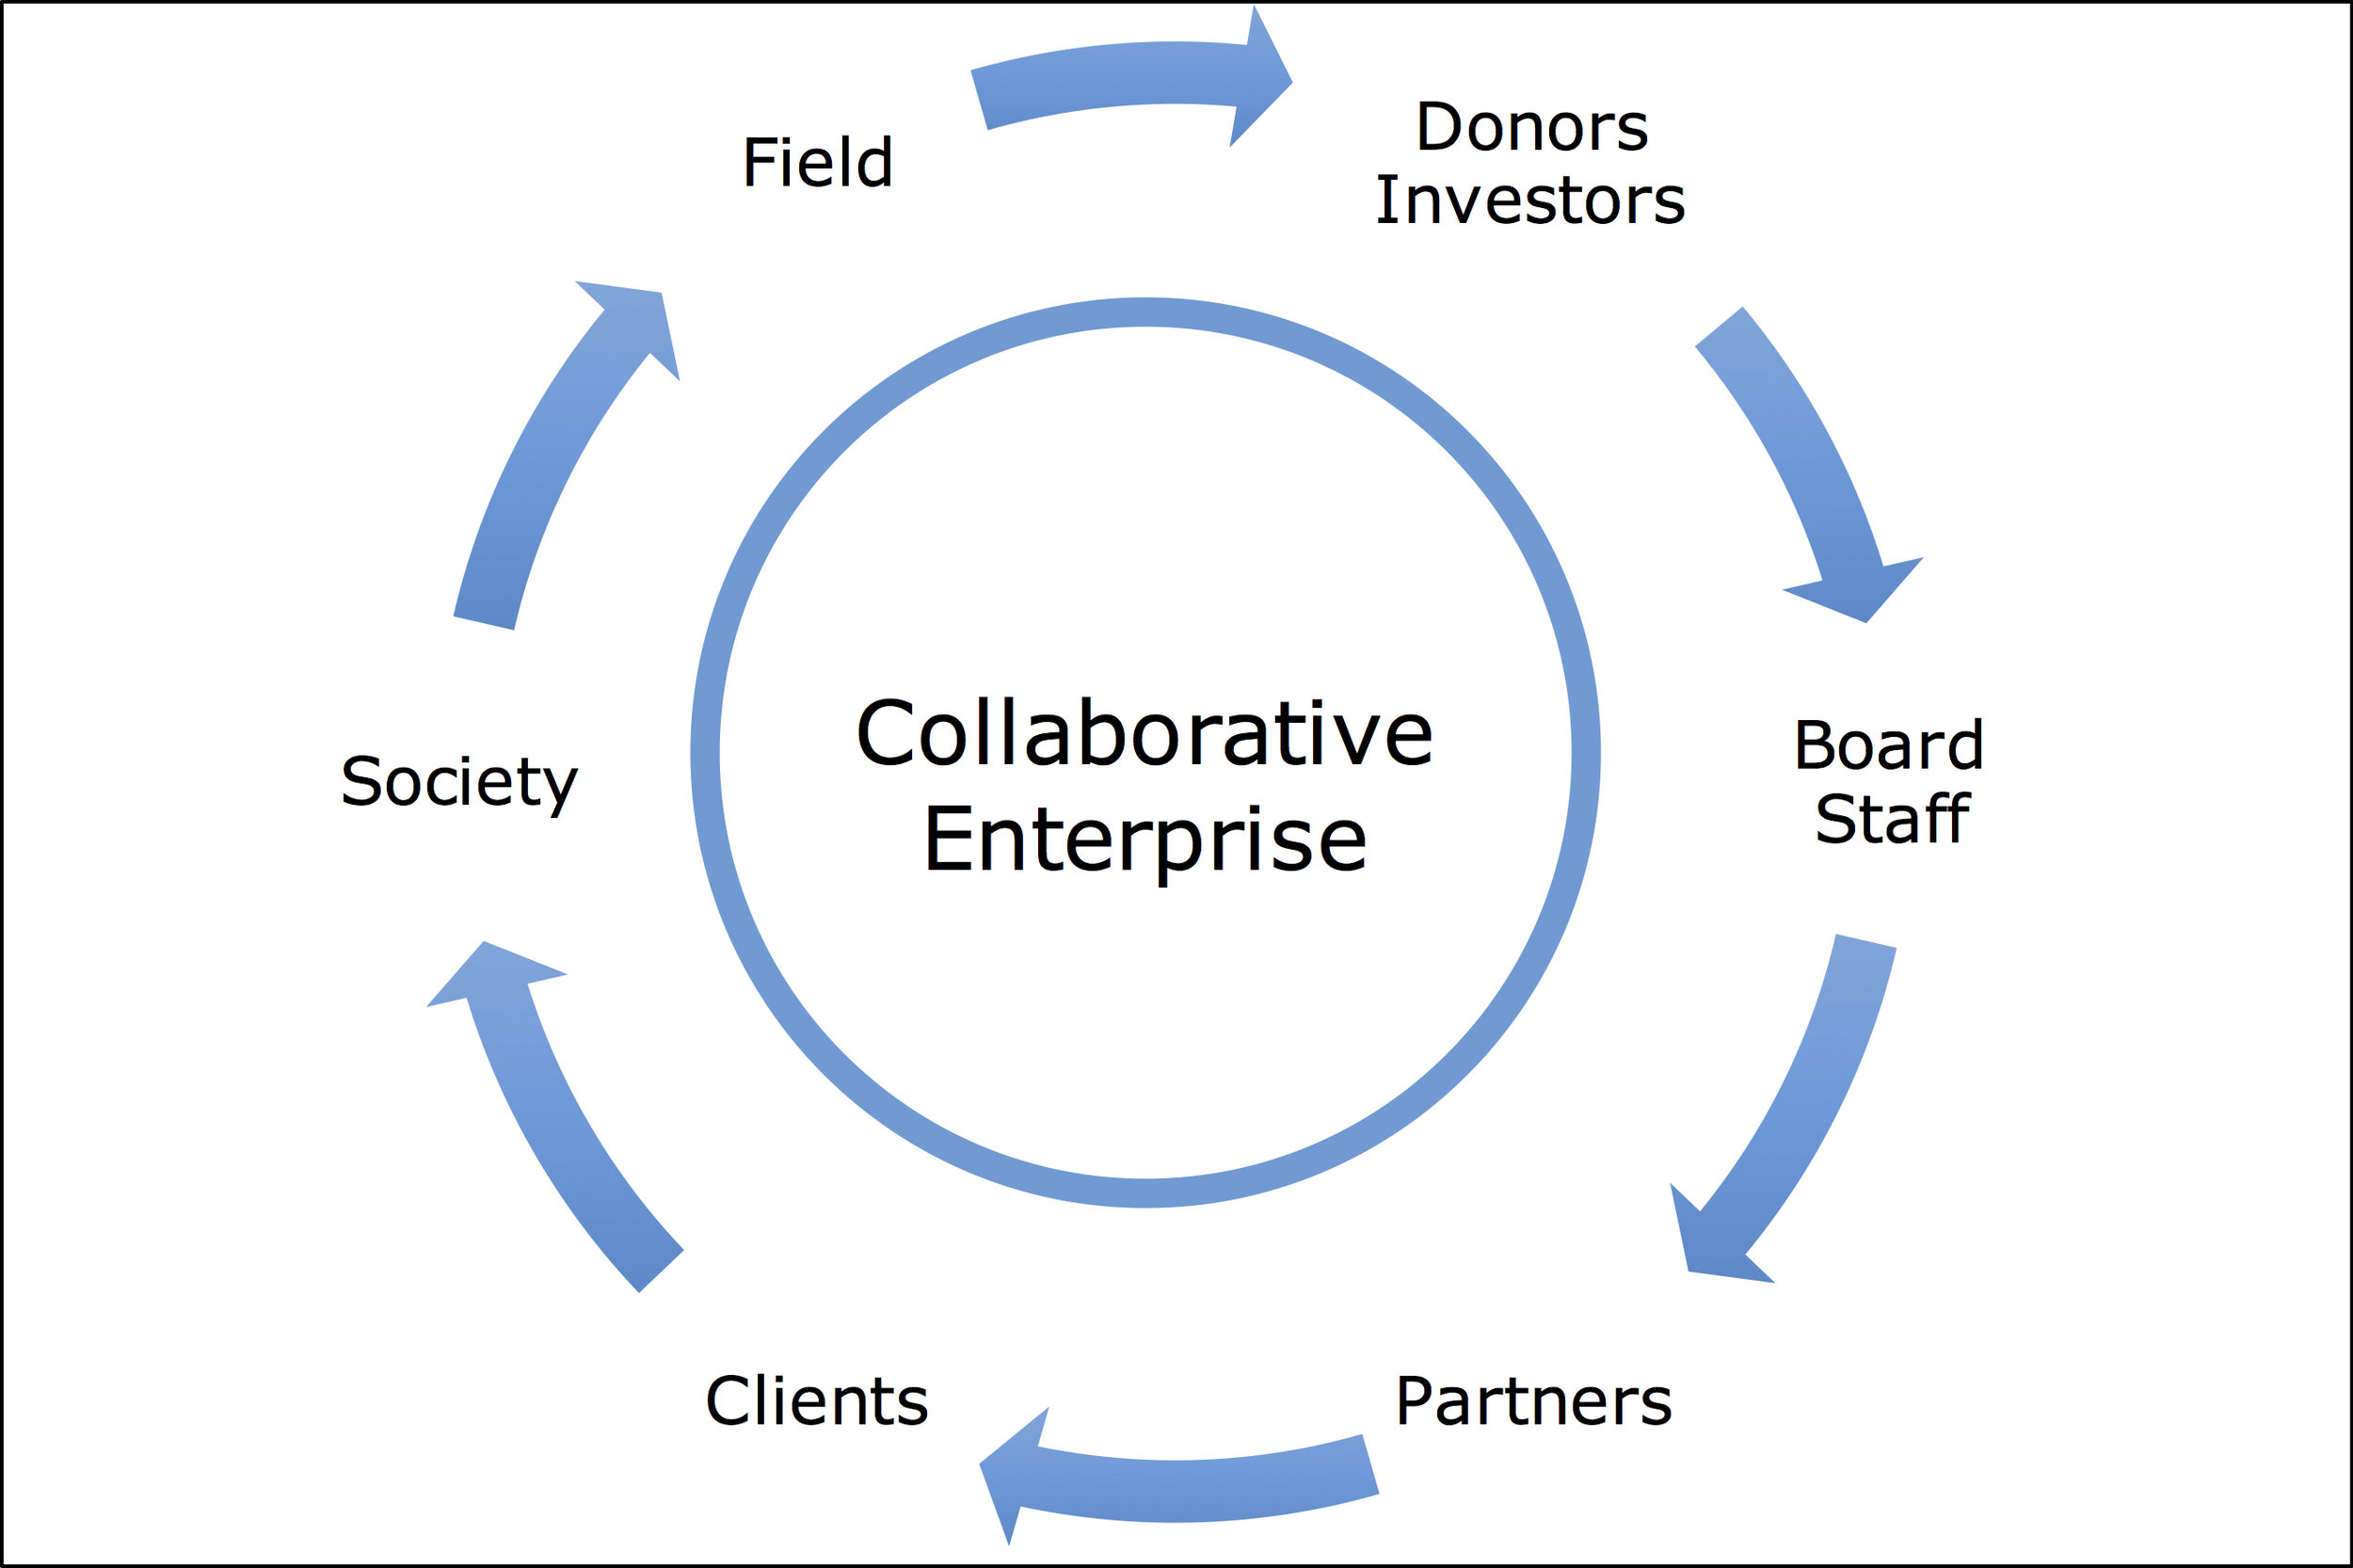 Our  social innovation framework  is a platform for designing and shaping highly distributed, collaborative networks of partners and stakeholders who together accomplish what no one can do on their own. These collaborative networks create broad and wide-ranging benefits for all participants, while producing a stronger, more sustainable, and flexible organization at the hub. With this approach, you transform your enterprise into an engine of  shared value .